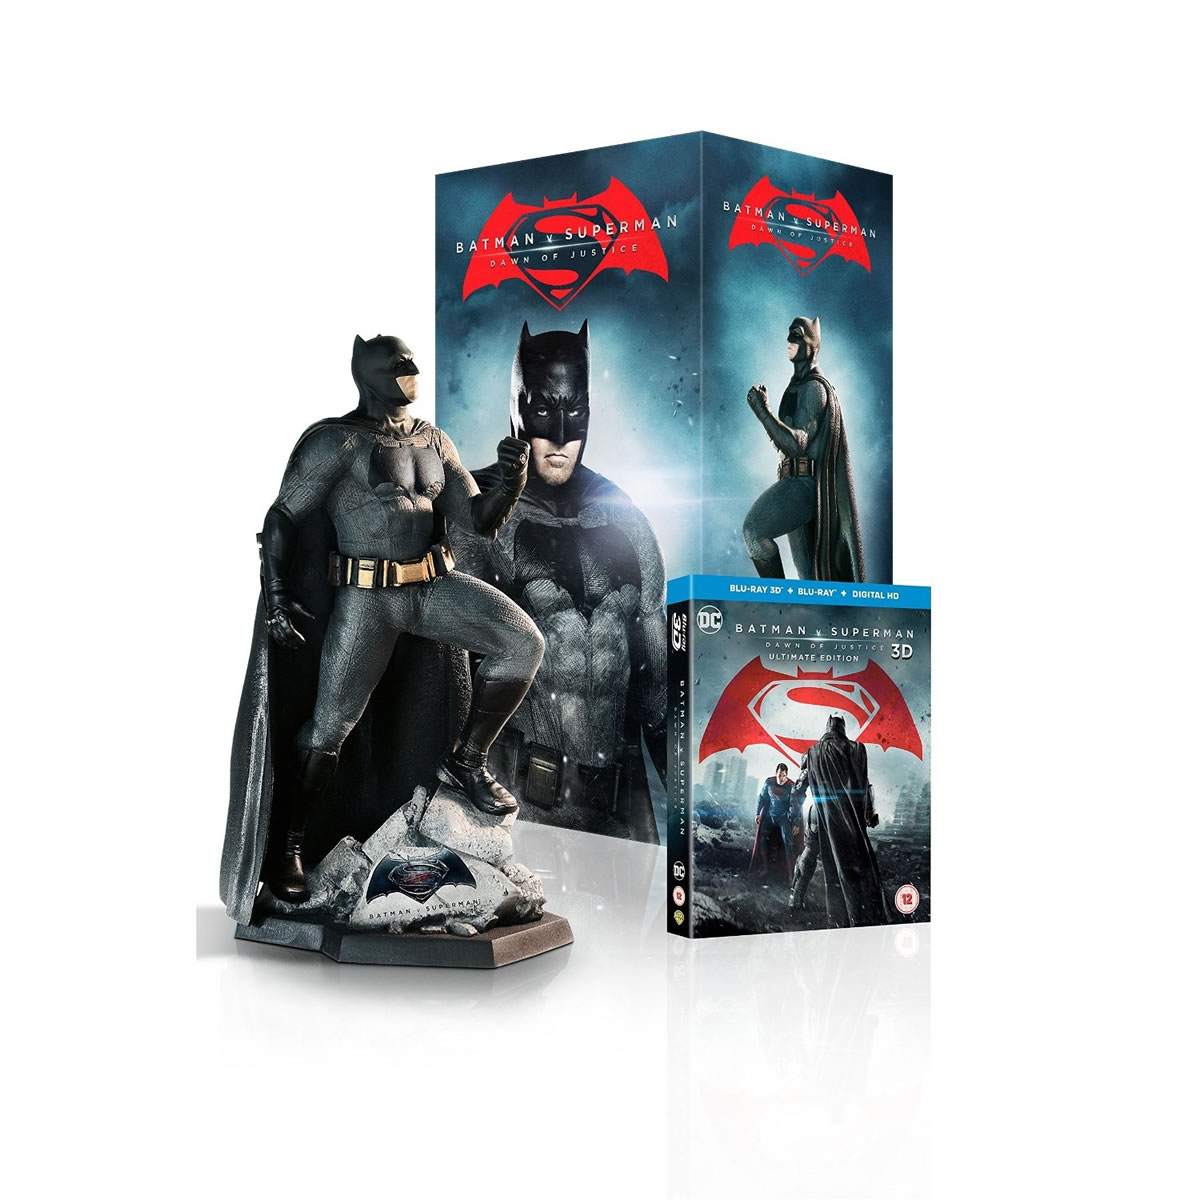 BATMAN V SUPERMAN: DAWN OF JUSTICE 3D Extended Unrated Cut ULTIMATE EDITION - BATMAN V SUPERMAN: � ���� ��� ����������� 3D Extended Unrated Cut ULTIMATE EDITION + Batman Statue Limited Collector's Edition (BLU-RAY 3D + BLU-RAY)